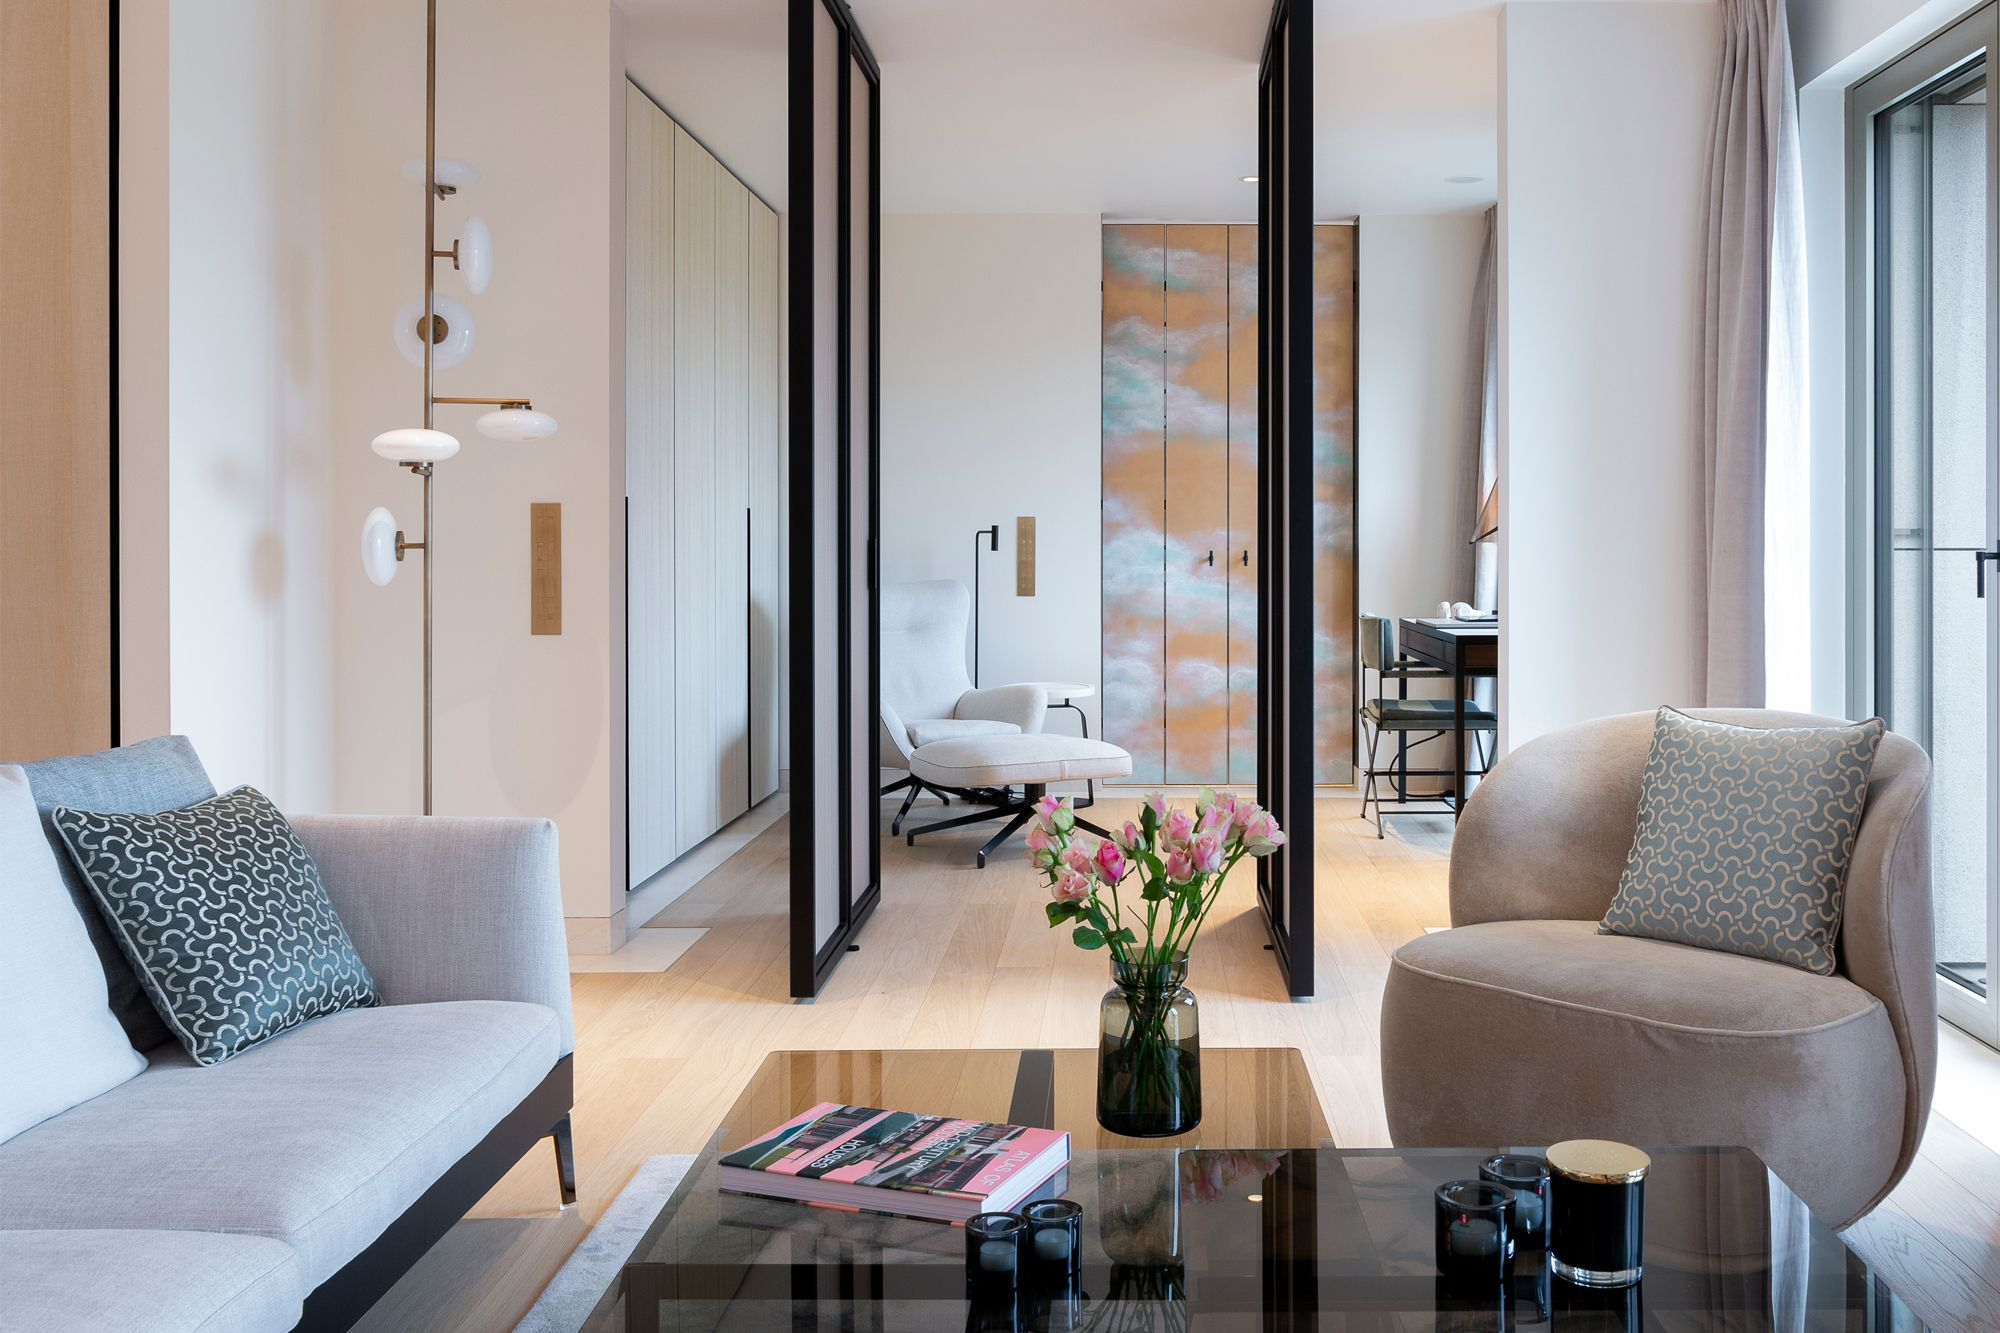 The living room is ingeniously connected to the study via a set of custom-designed pivot doors